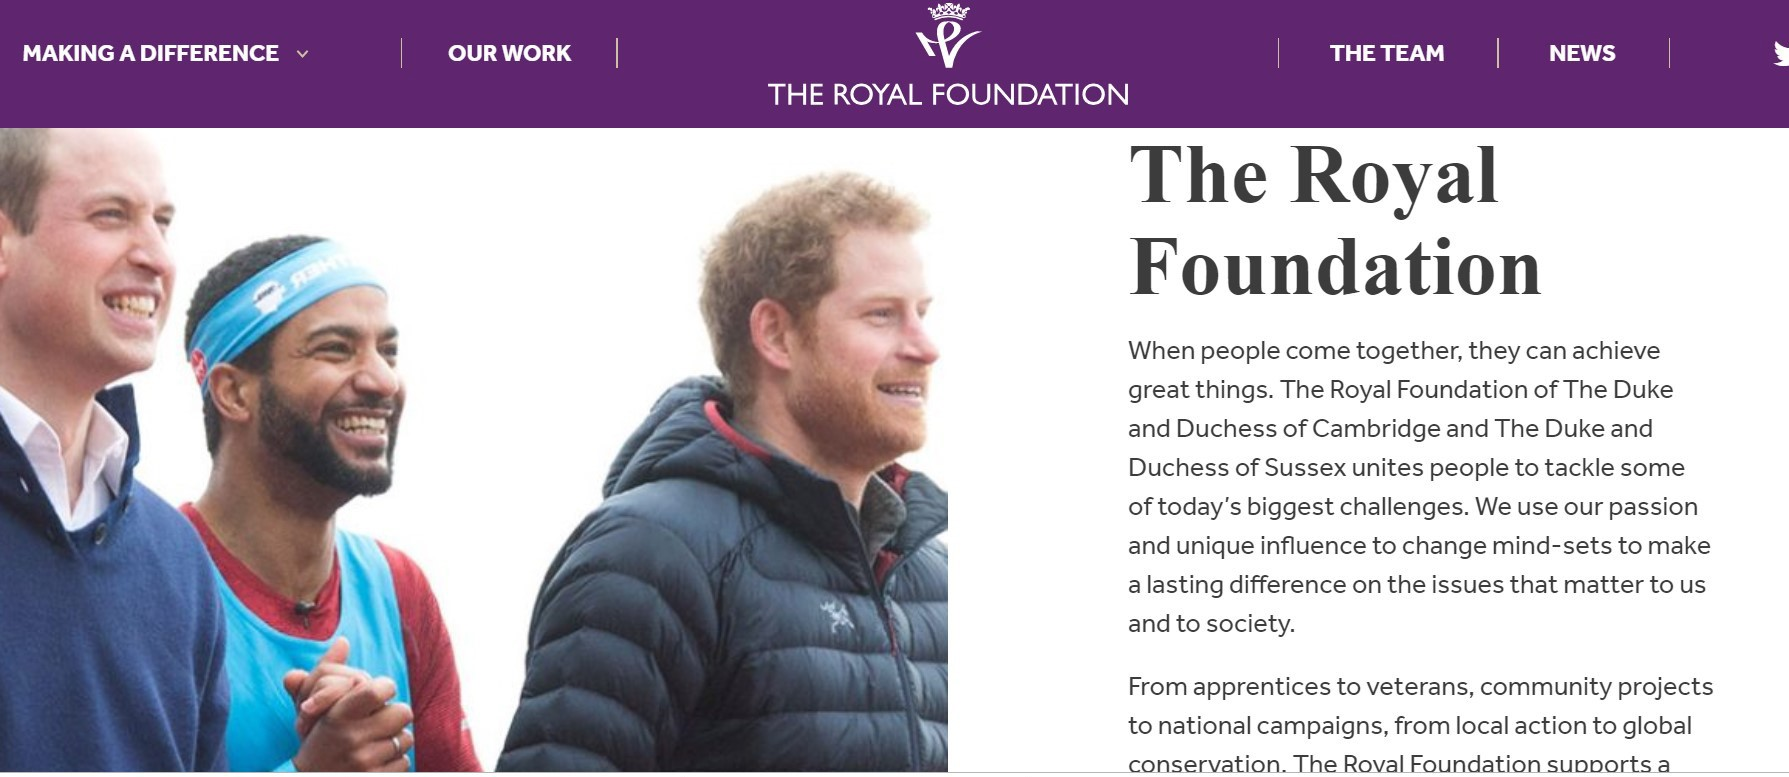 The Royal Foundation site